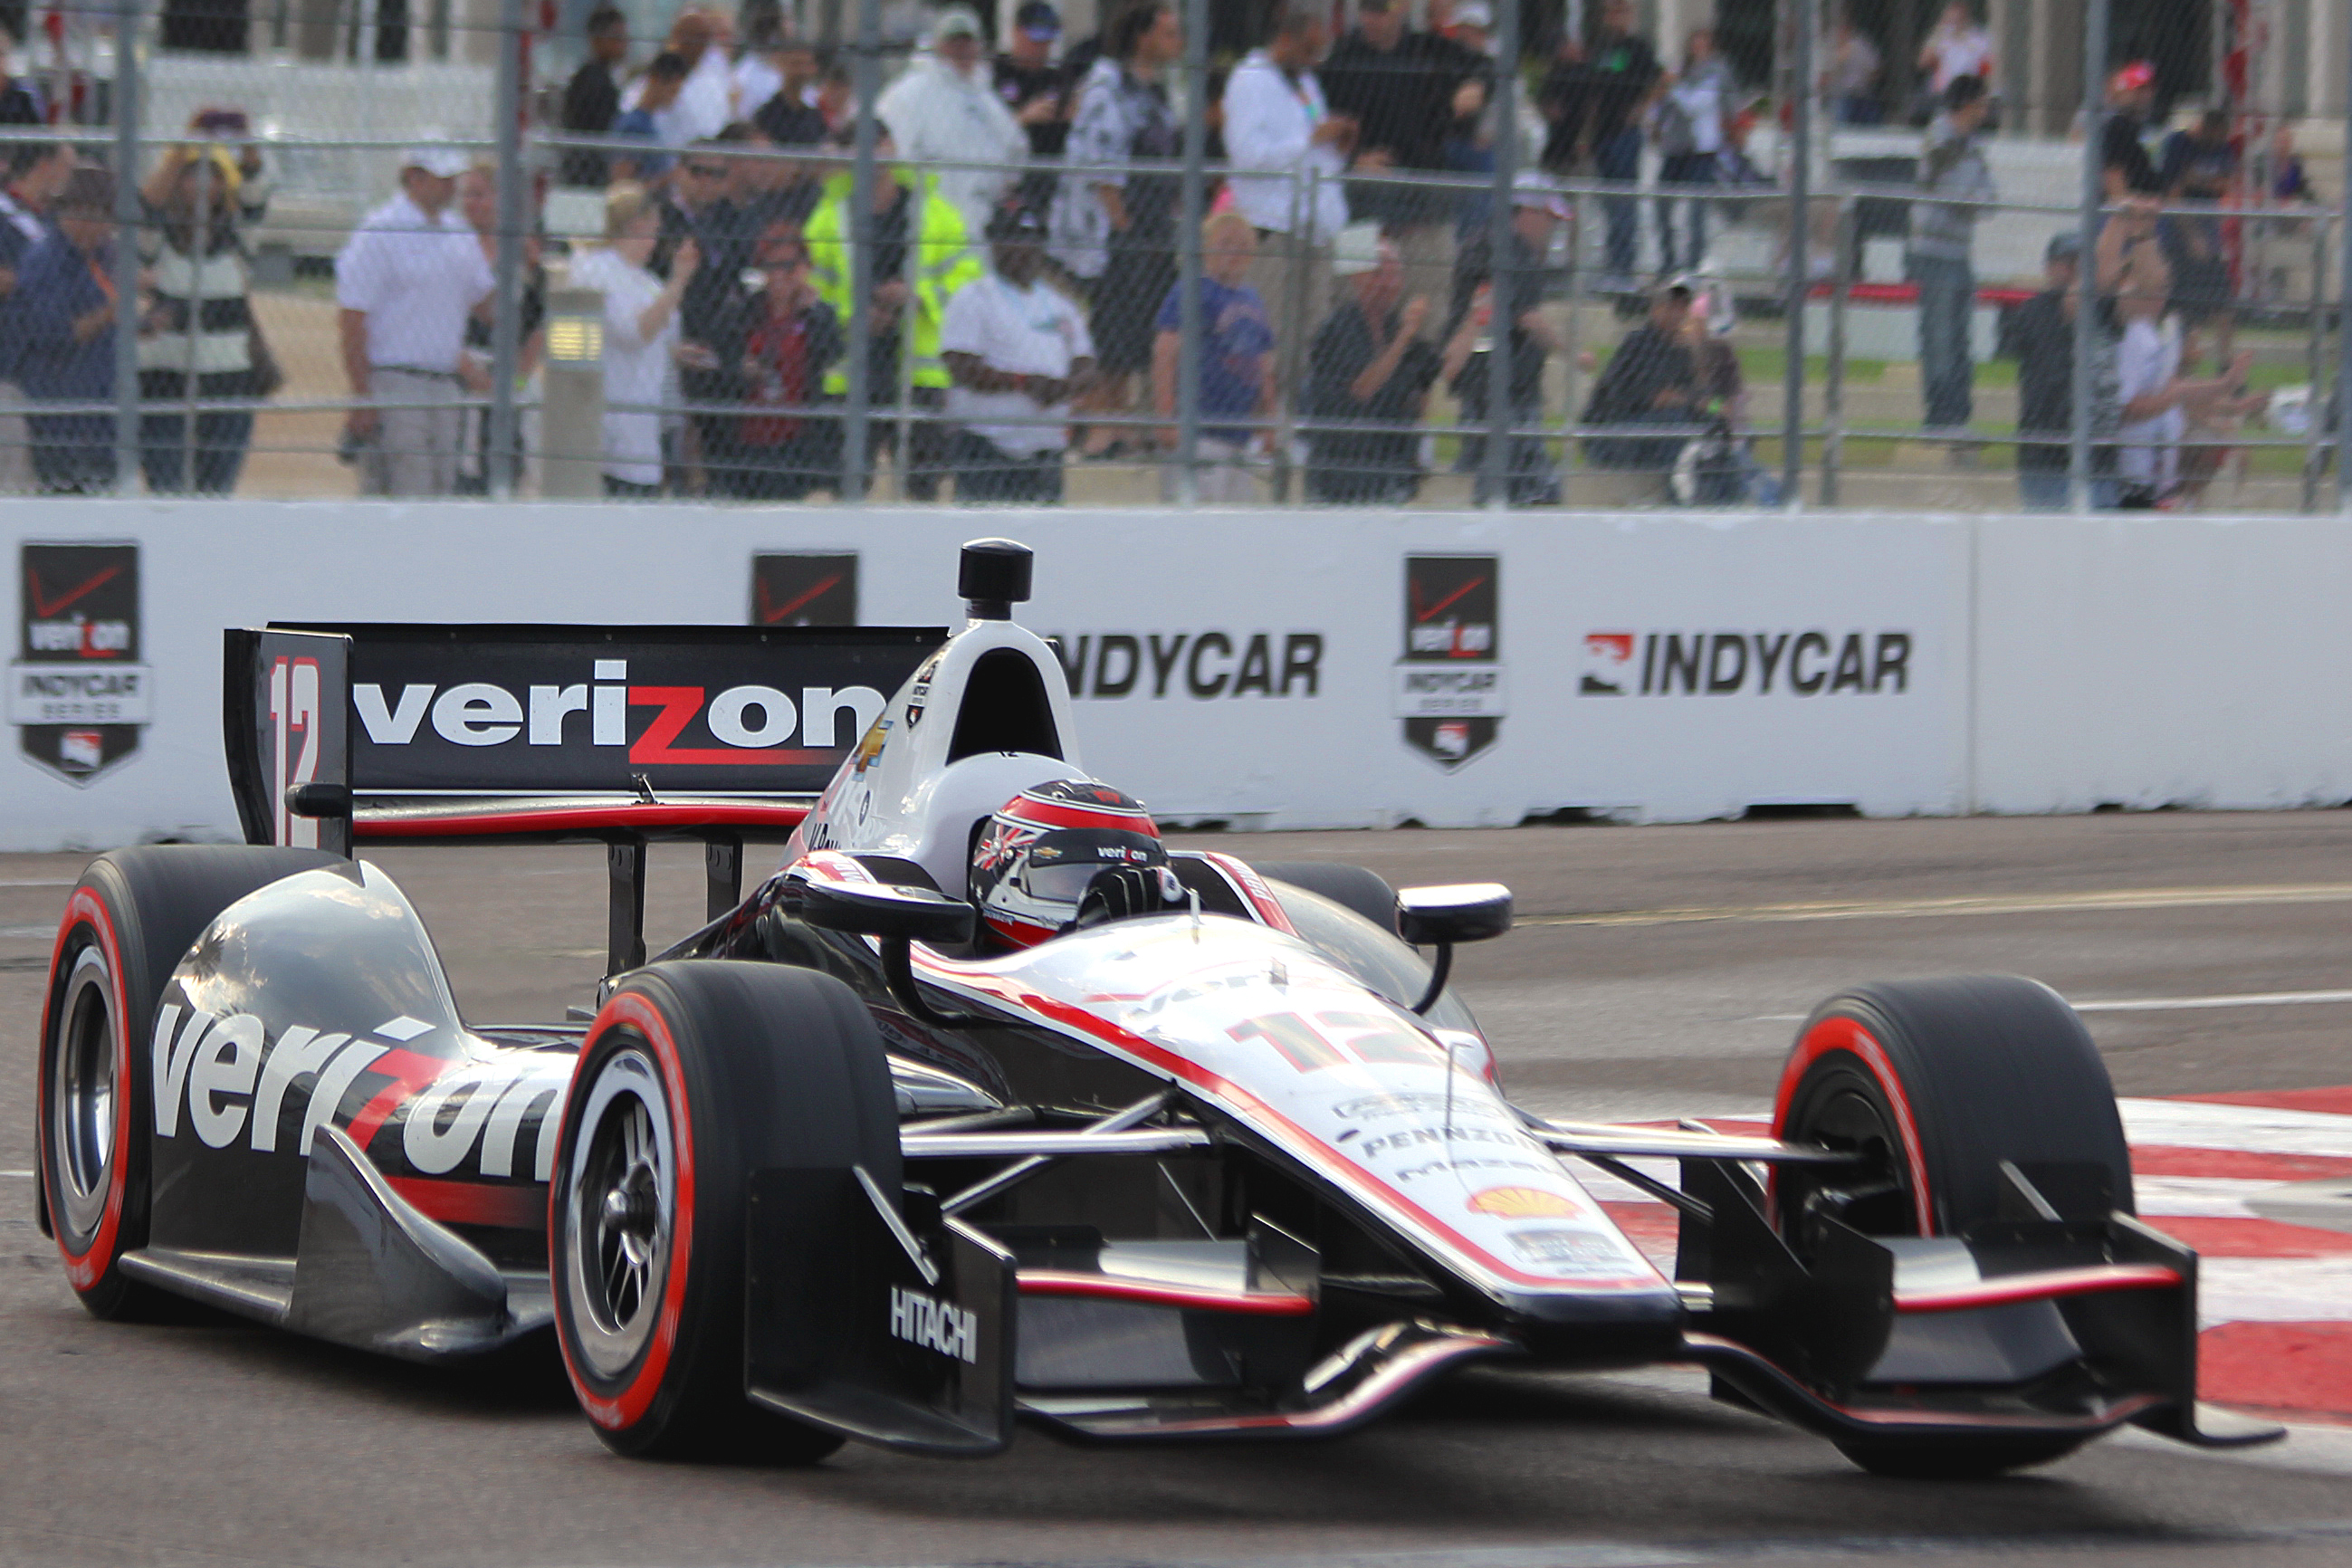 No pole for Power this year: Three-time St. Pete pole winner Will Power qualified fourth in the Chevy-powered #12 Verizon Penske. (Chris Jasurek/Epoch Times)